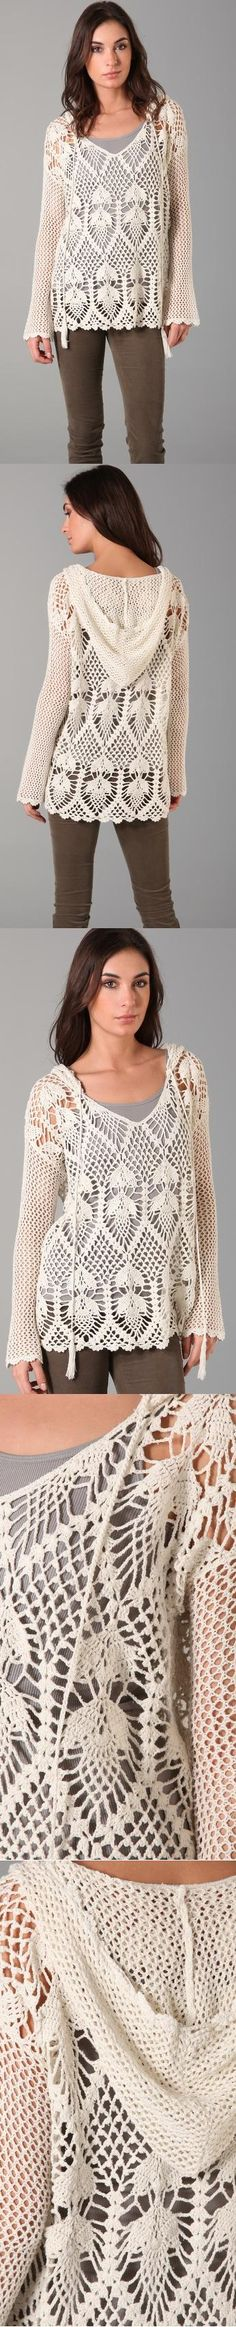 Free People. Pacifica Crochet Hooded Sweater.